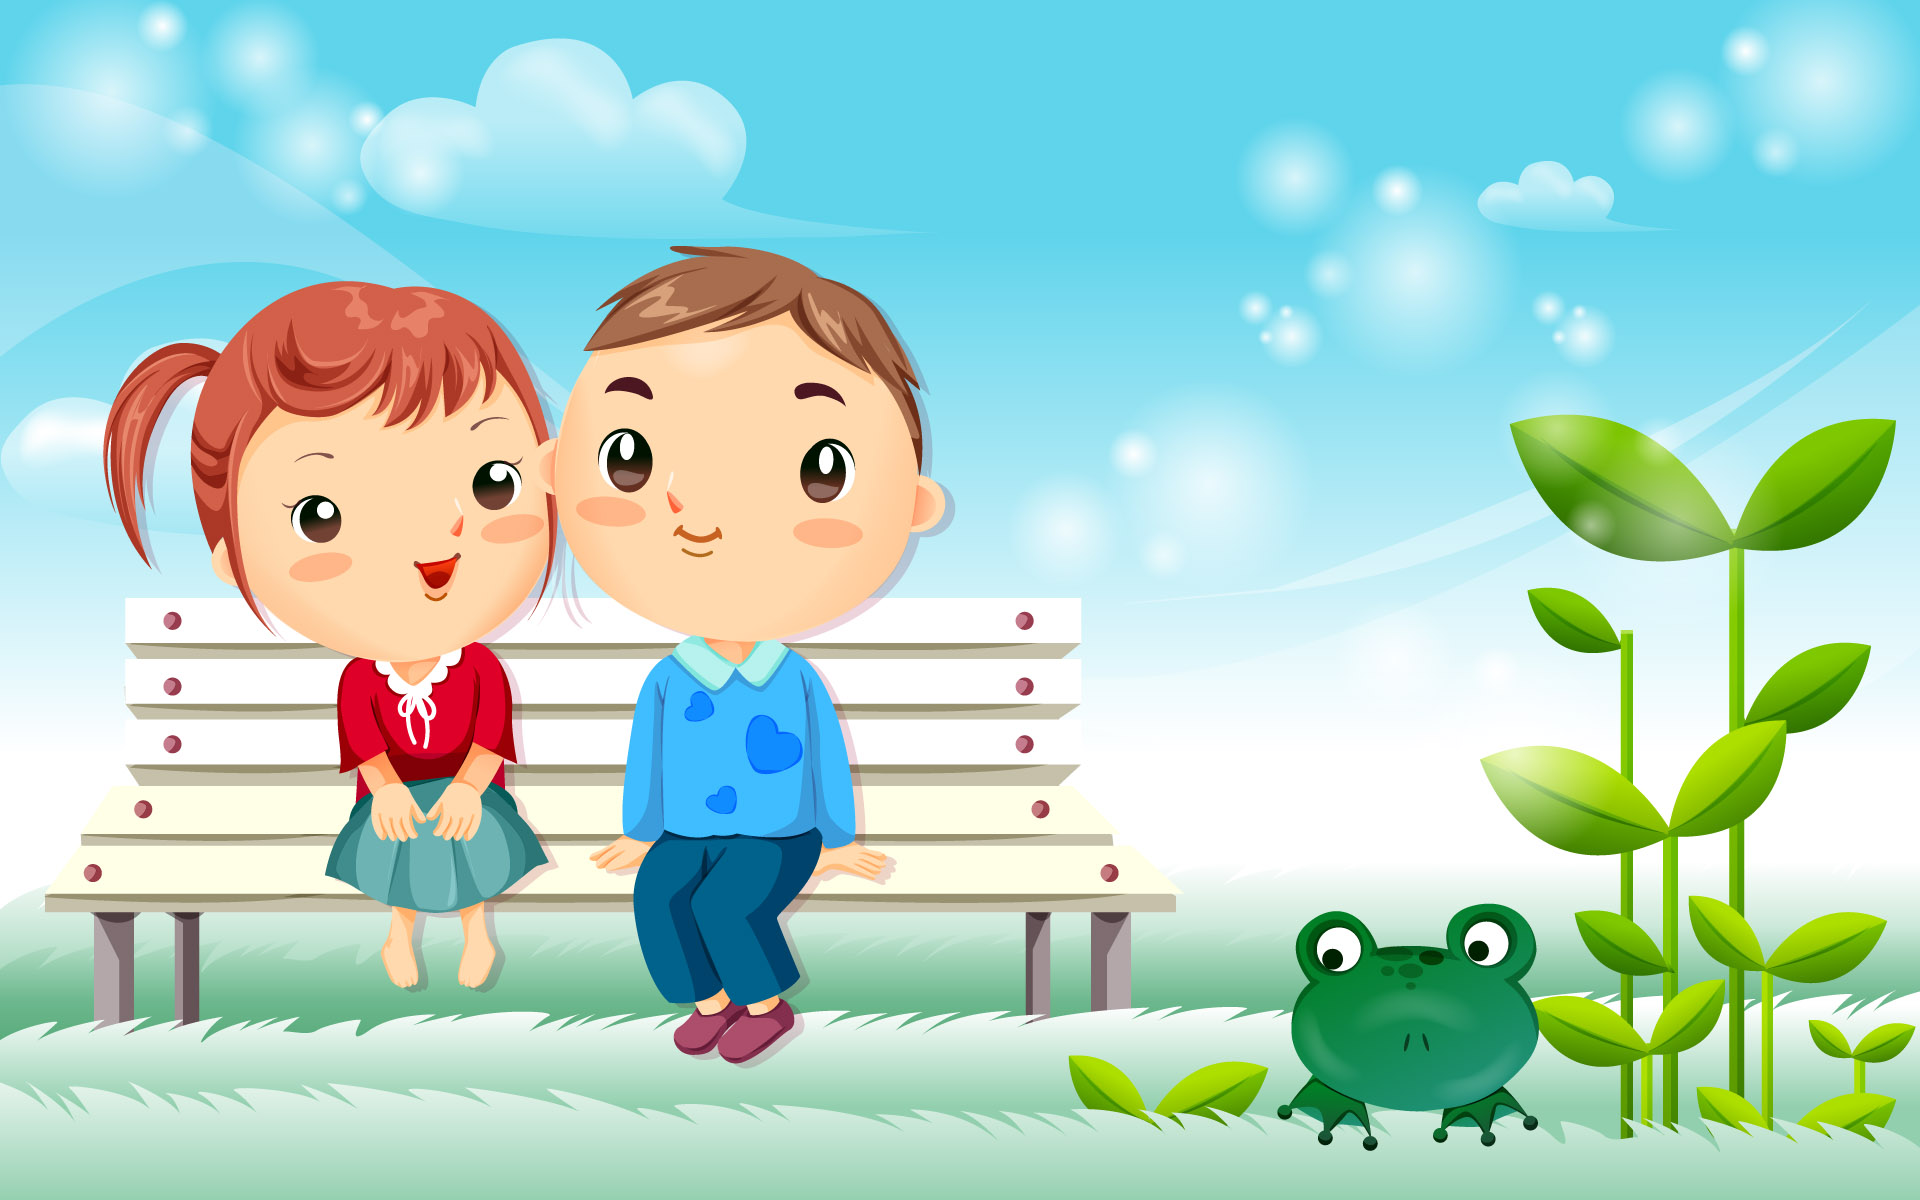 Cute Child Couple Wallpaper Hd Cute Girly Wallpapers Hd Pixelstalk Net